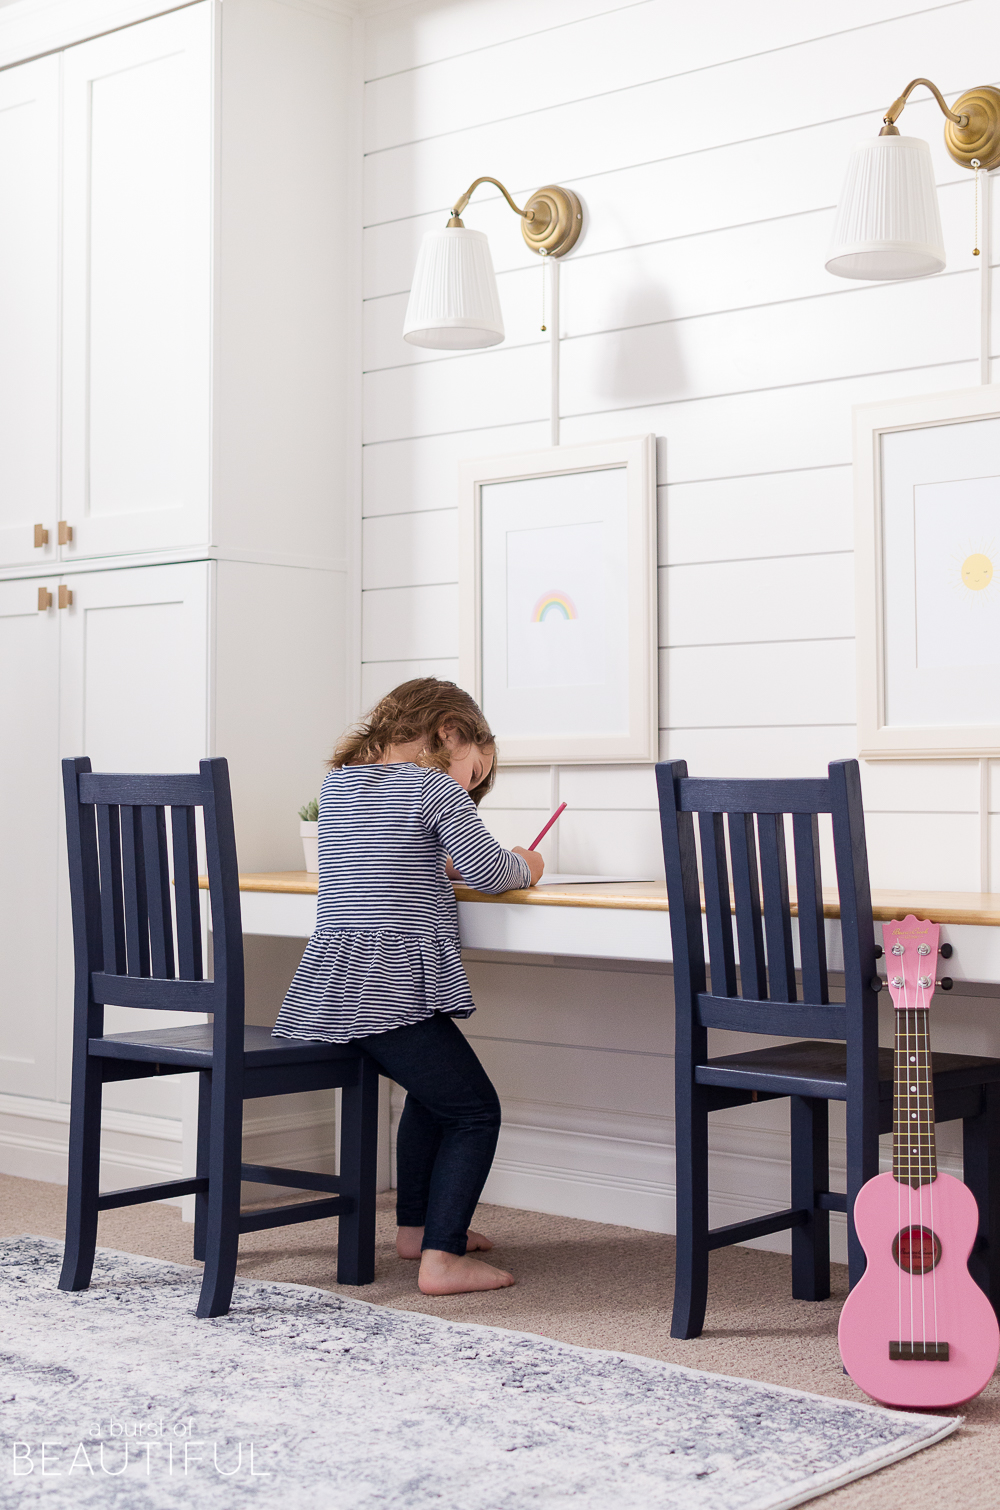 A simple kid-sized table is a perfect addition to any playroom or kid's space, providing a sweet space to color, play games or finish homework.  Build your own kid-sized table using these easy free plans.